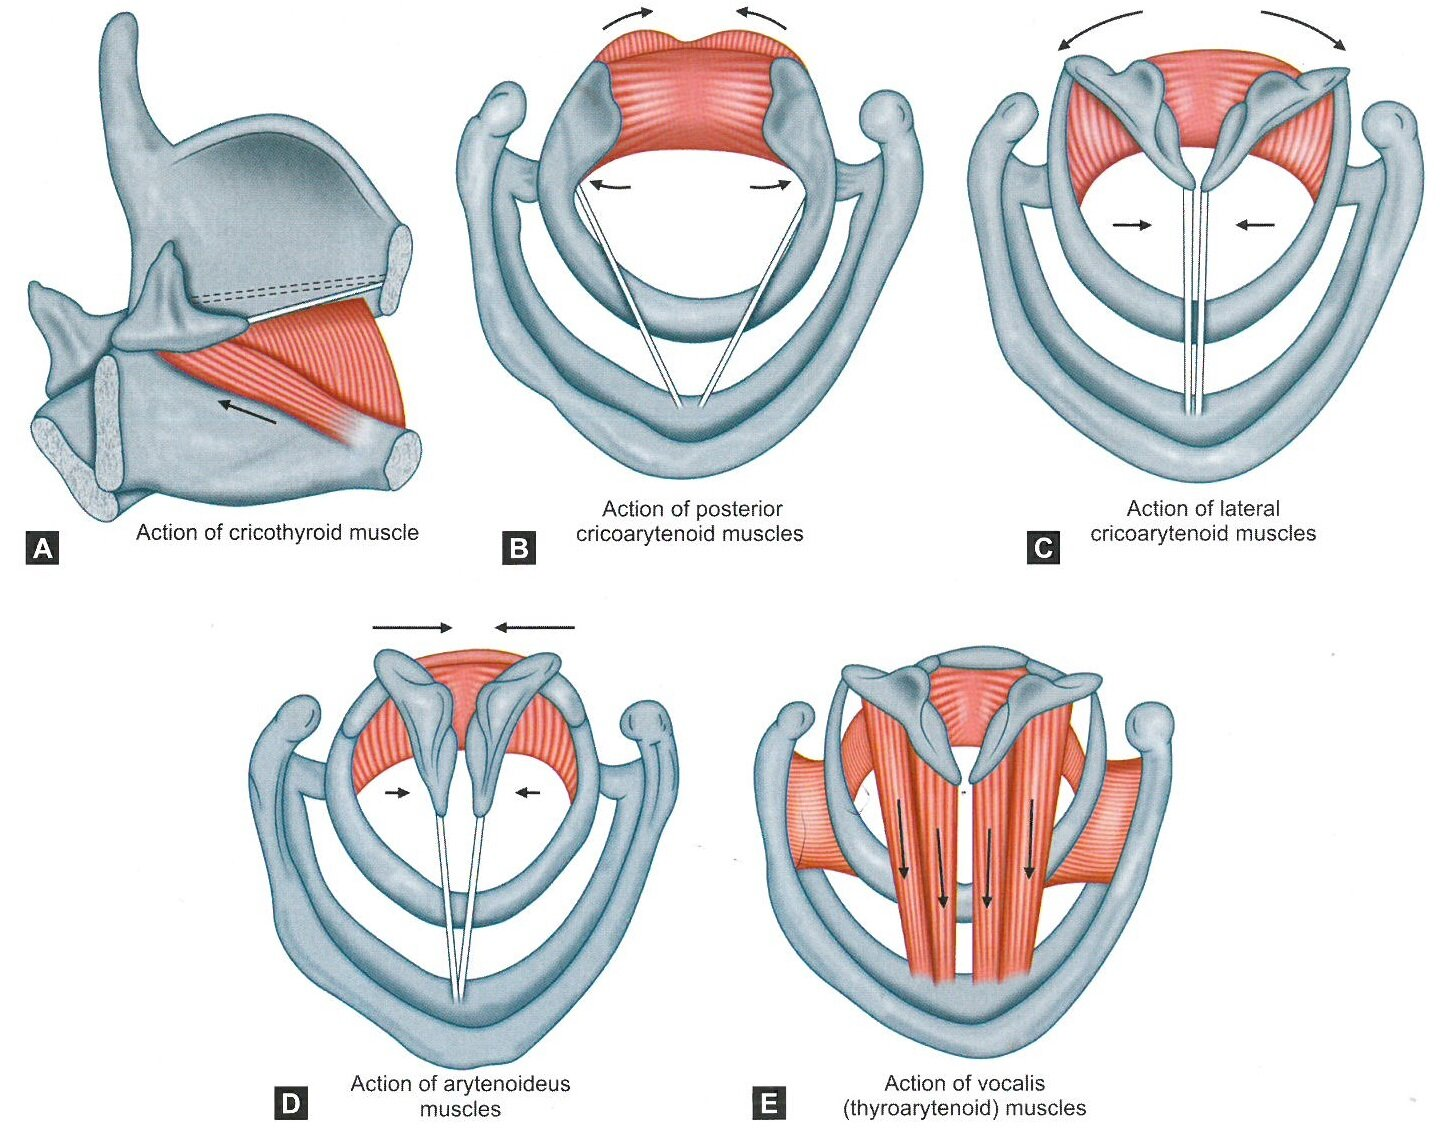 Actions of the intrinsic muscles. From Sataloff, R.T., Chowdhury, F., Portnoy, J., Hawkshaw, M.J., Joglekar S. Surgical Techniques in Otolaryngology – Head and Neck Surgery: Laryngeal Surgery. New Delhi, India: Jaypee Brothers Medical Publishers; 2013 with permission.